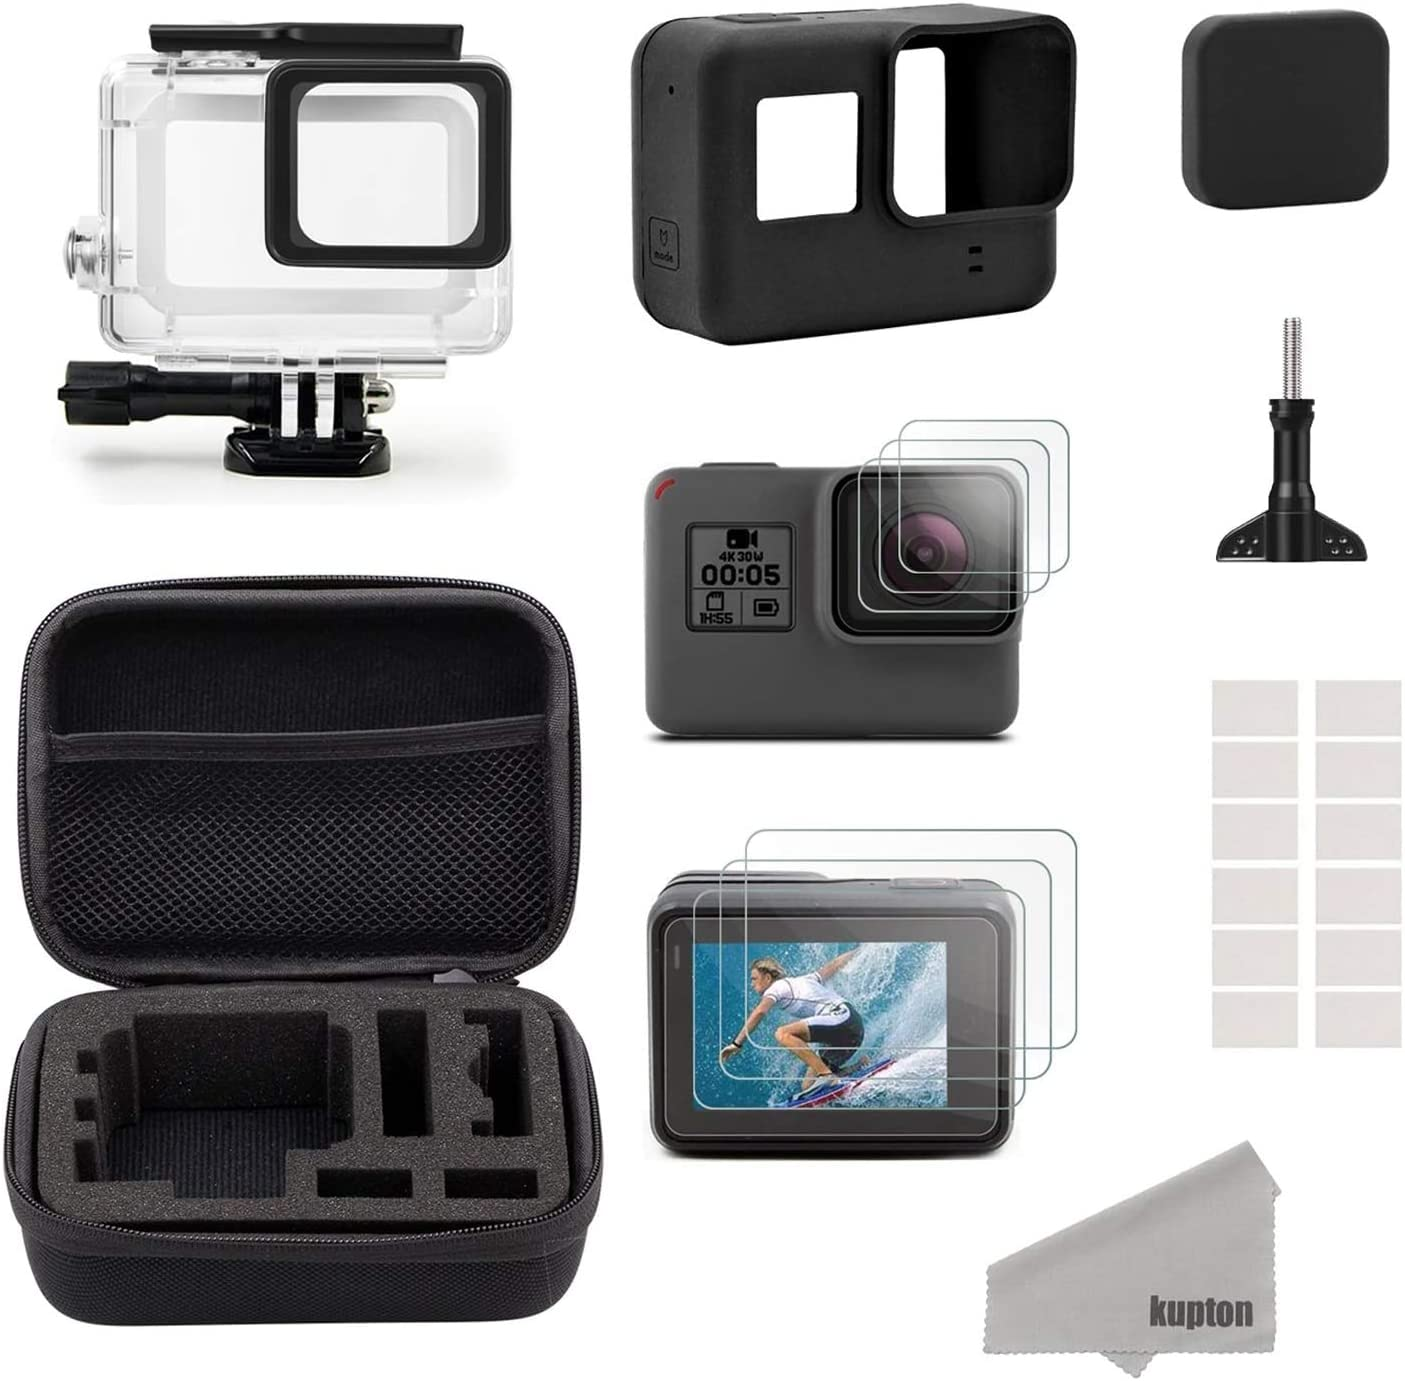 Amazon Com Kupton Accessories Compatible With Gopro Hero 7 Black 6 5 Starter Kit Travel Case Housing Case Screen Protector Lens Cover Silicone Cover For Go Pro Hero7 Hero6 Hero5 Hero 2018 Camera Photo